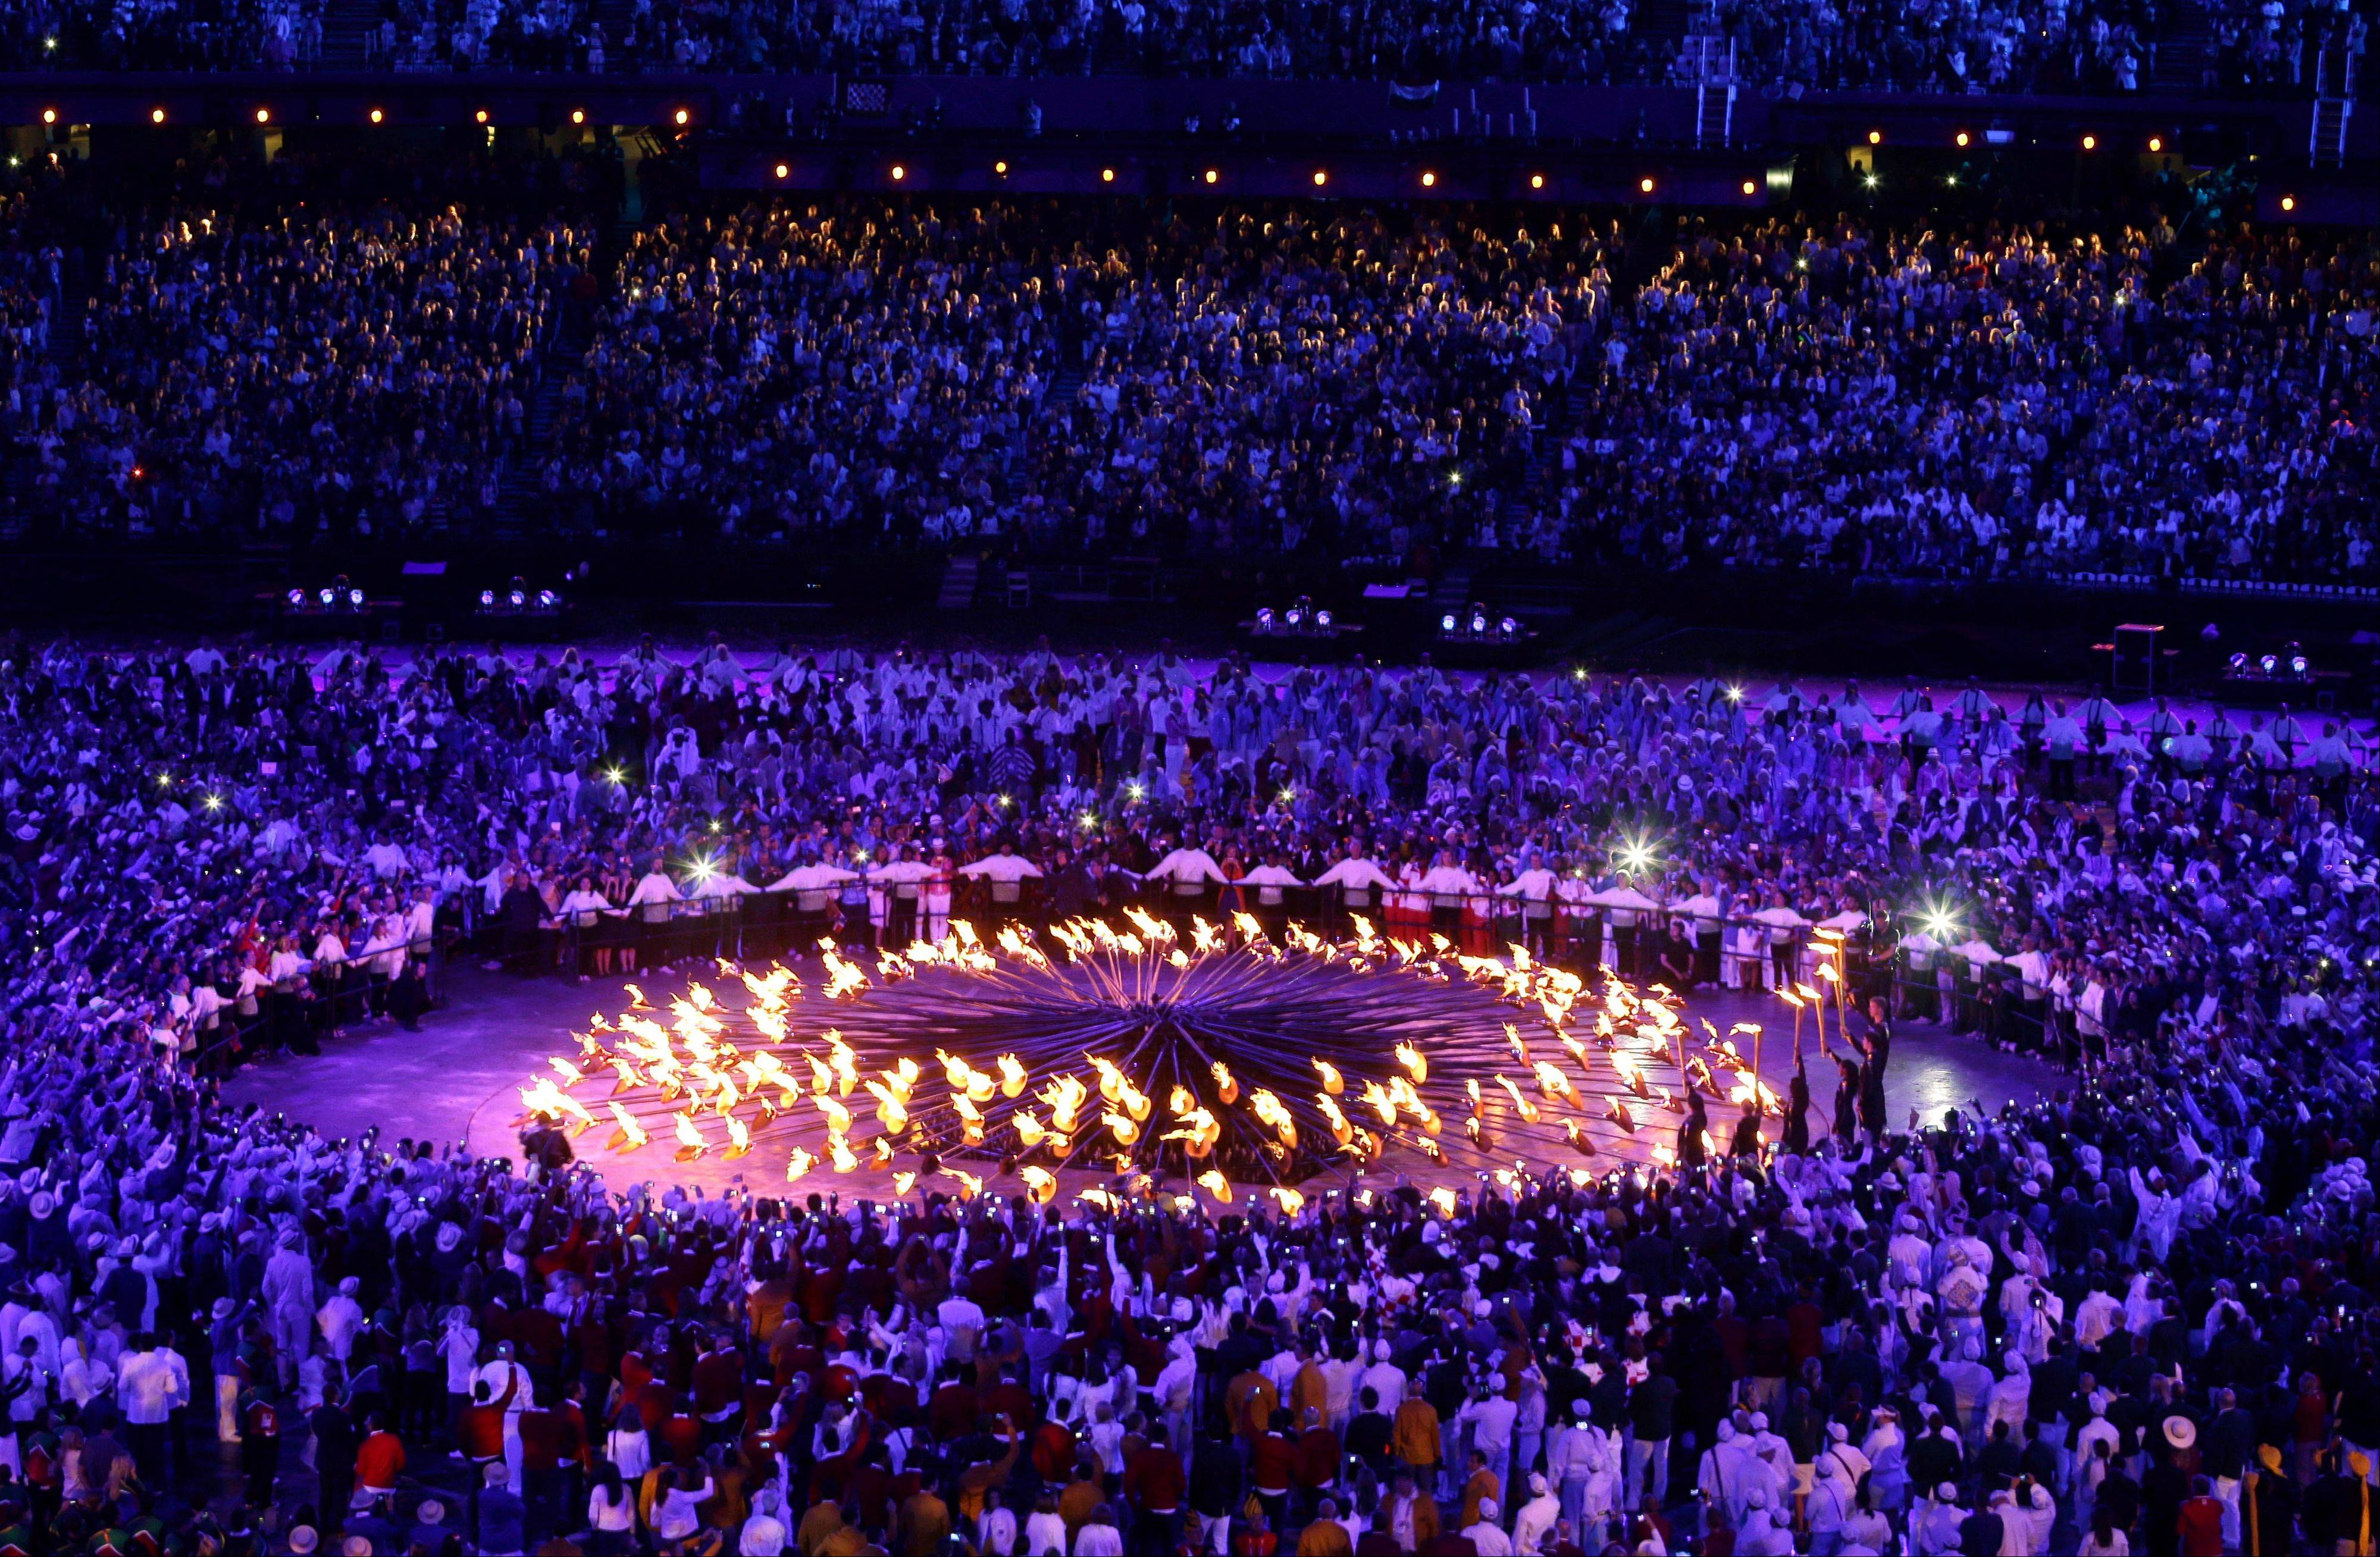 The Olympic caldron is lit during Friday's Opening Ceremony in London. NBC showed the ceremony on tape delay in the United States.